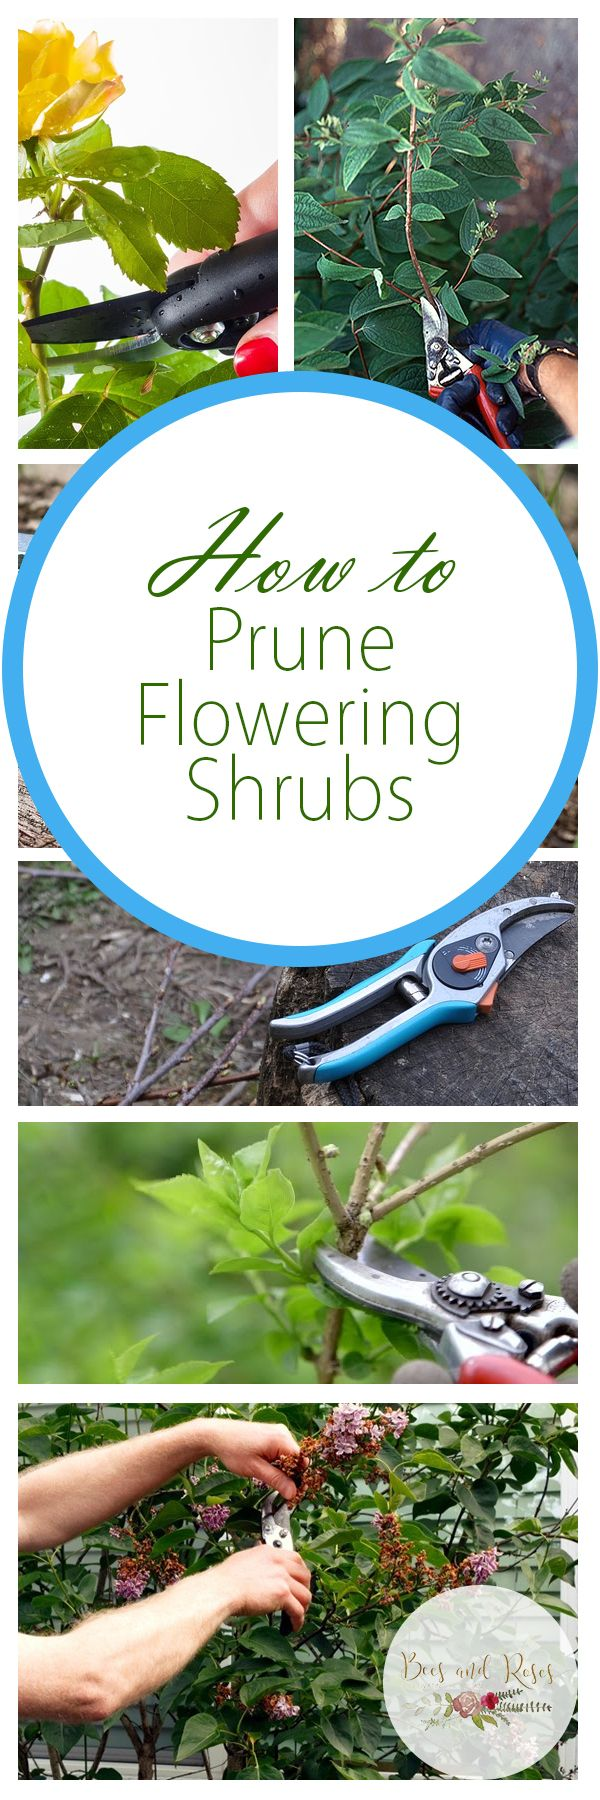 How to Prune Flowering Shrubs - Bees and Roses| Prune Shrubs, How to Prune Shrubs, Easily Prune Shrubs, Gardening, Gardening TIps and Tricks, Gardening Hacks, Flowering Shrub Care, Popular Pin #Shrubs #PruneShrubs